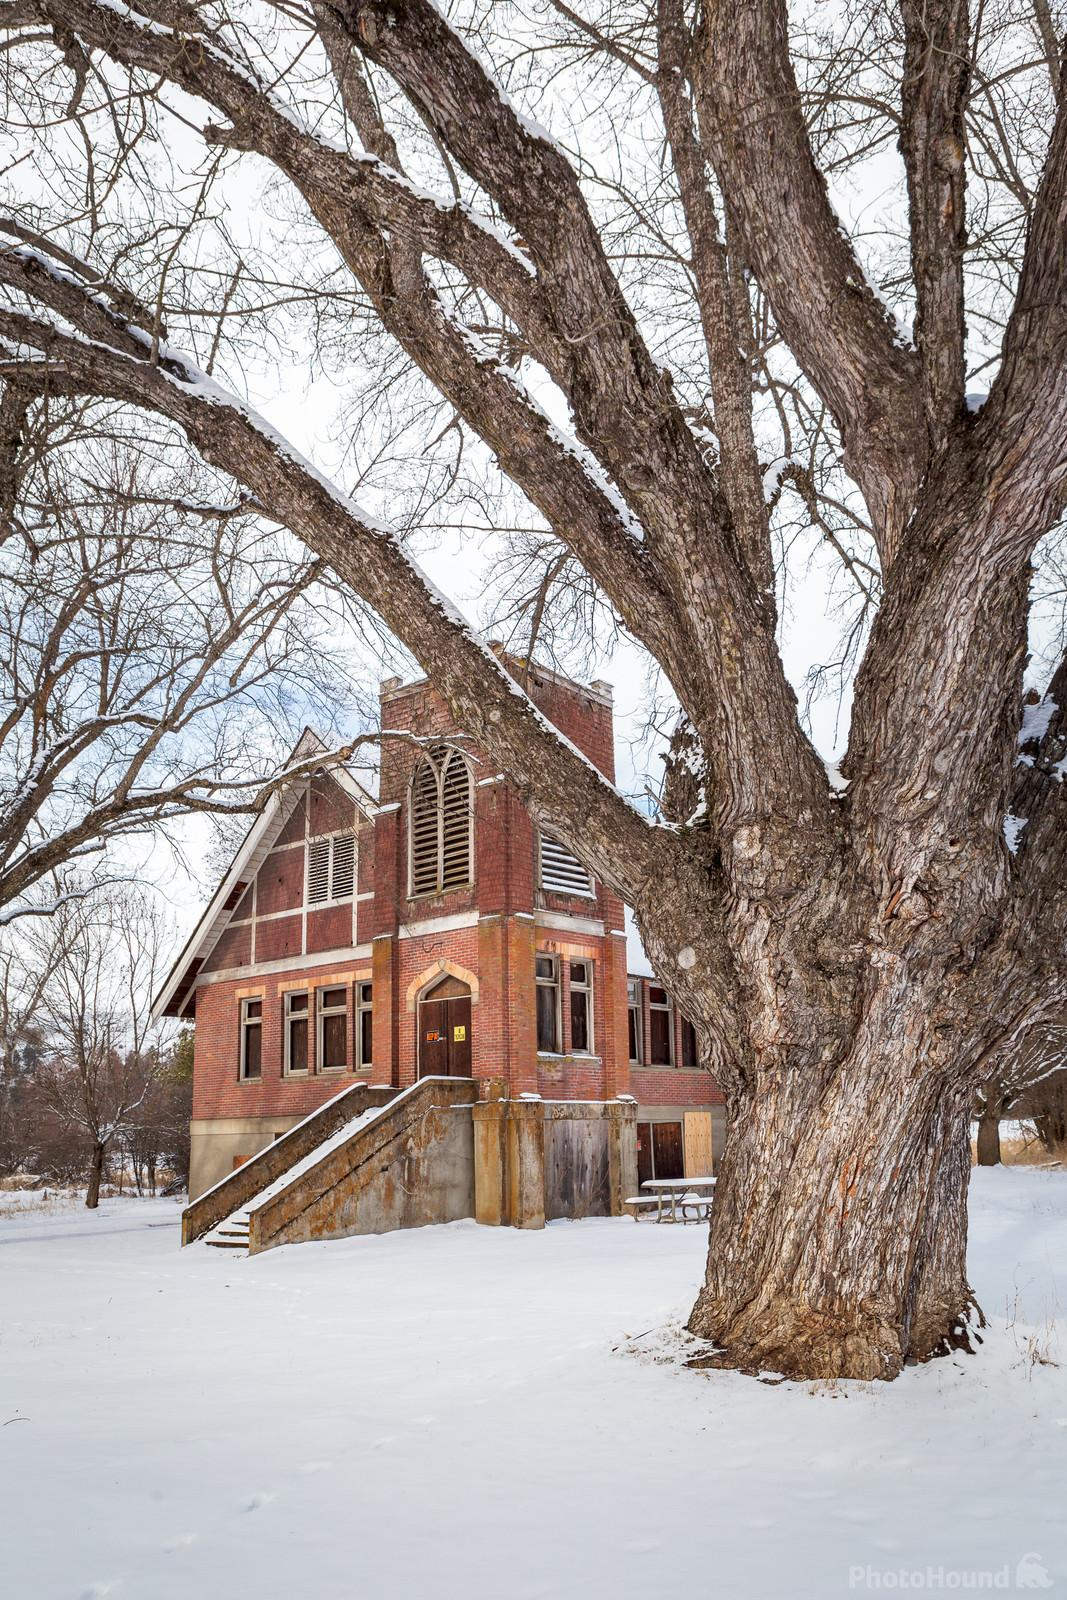 Old United Brethren Church in winter